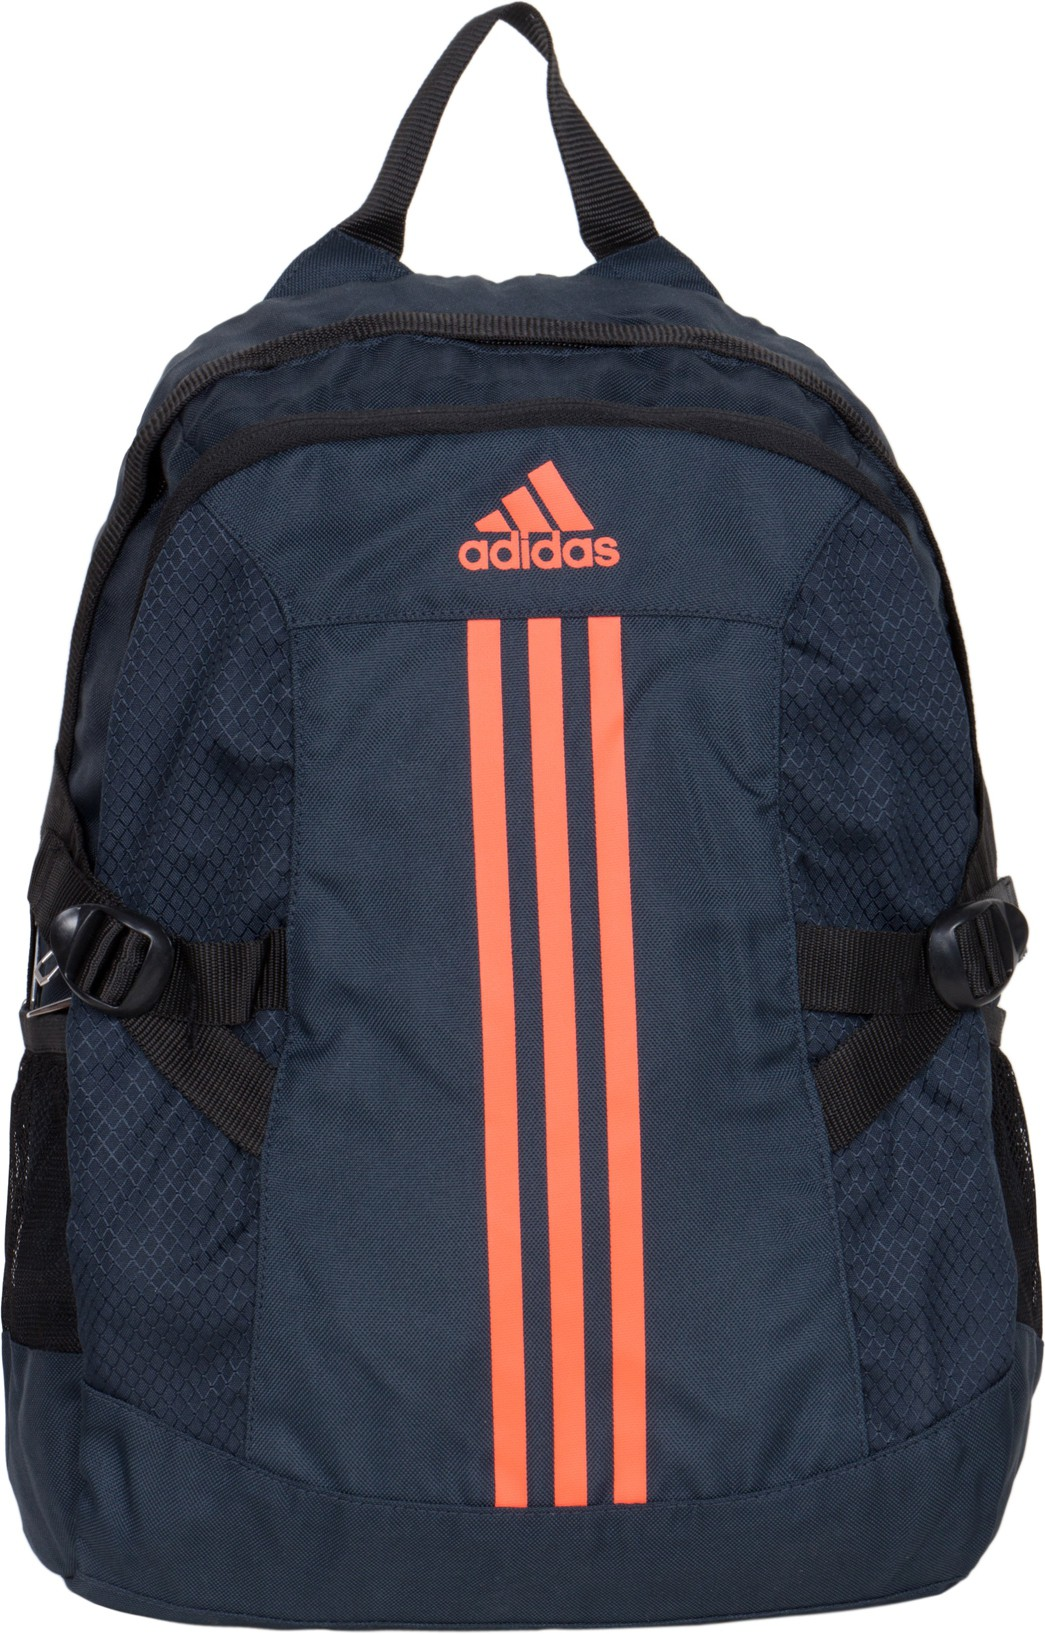 Flipkart - Backpacks, Duffel Bags & more AT, Puma & more